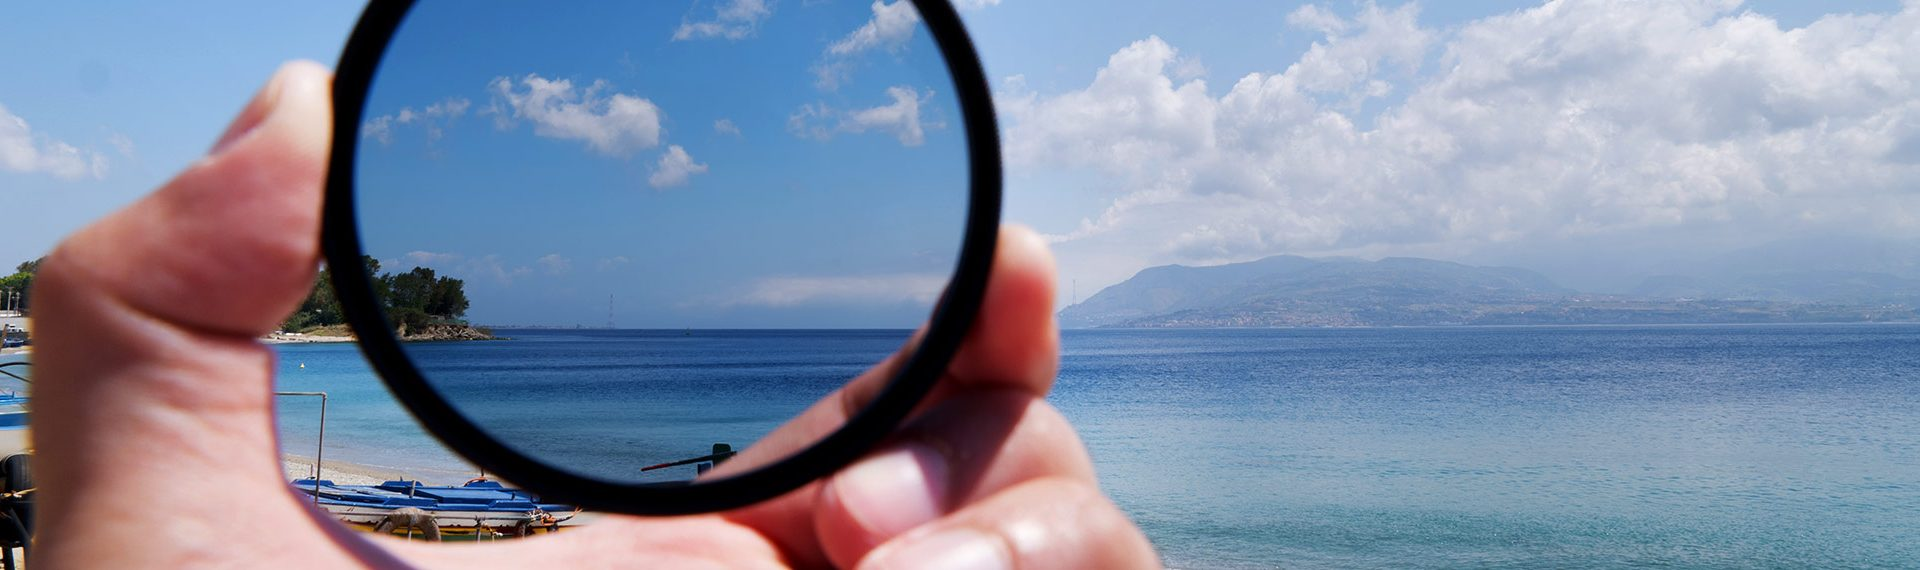 American Polarizers Inc.: Polarized Difference of a Beach View